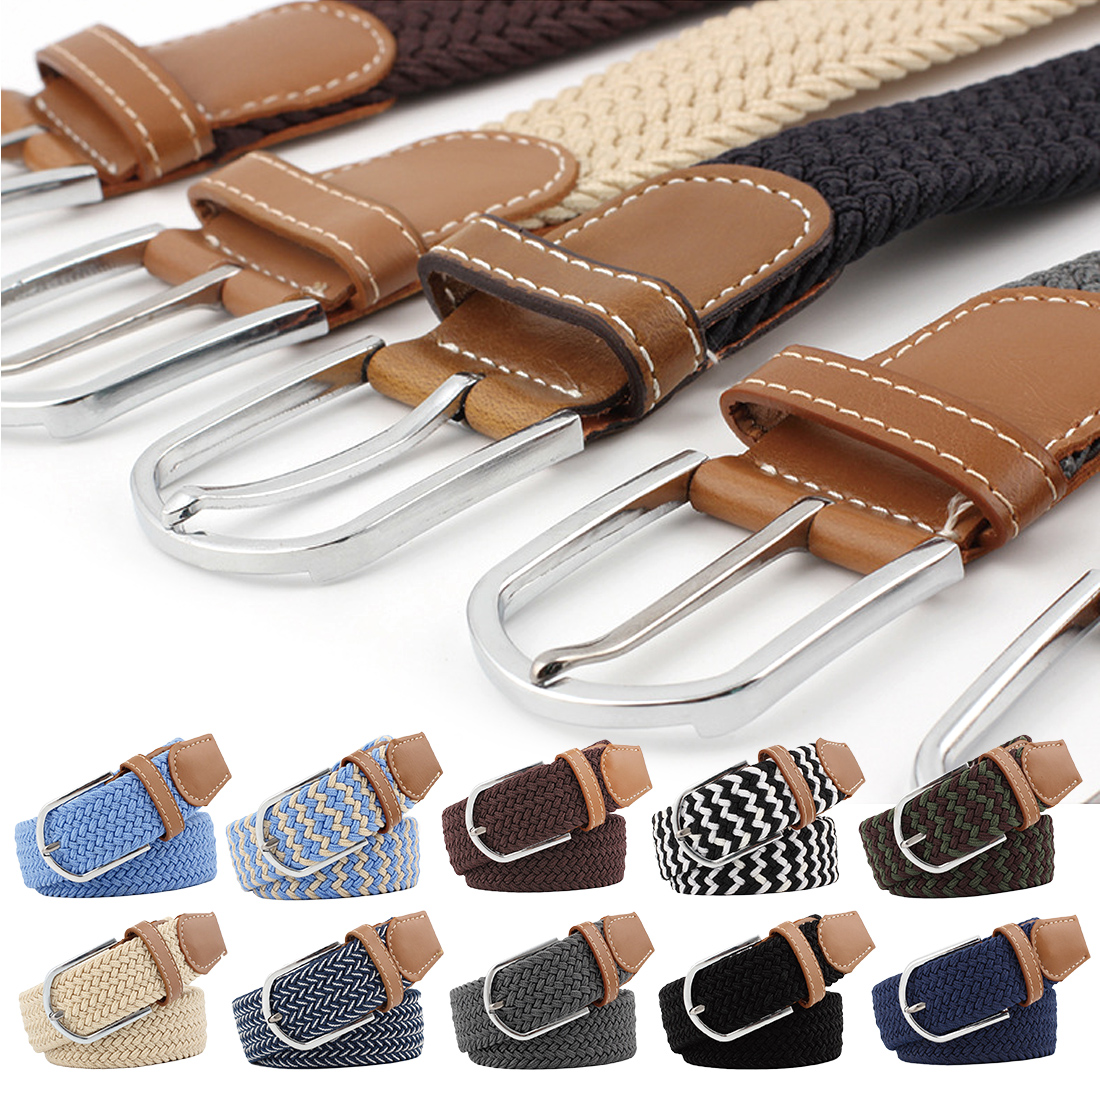 2018 Unisex Elastic Fabric Braided Belts for Male & Female Candy Colors New Style Belt Accessories Waist Belts